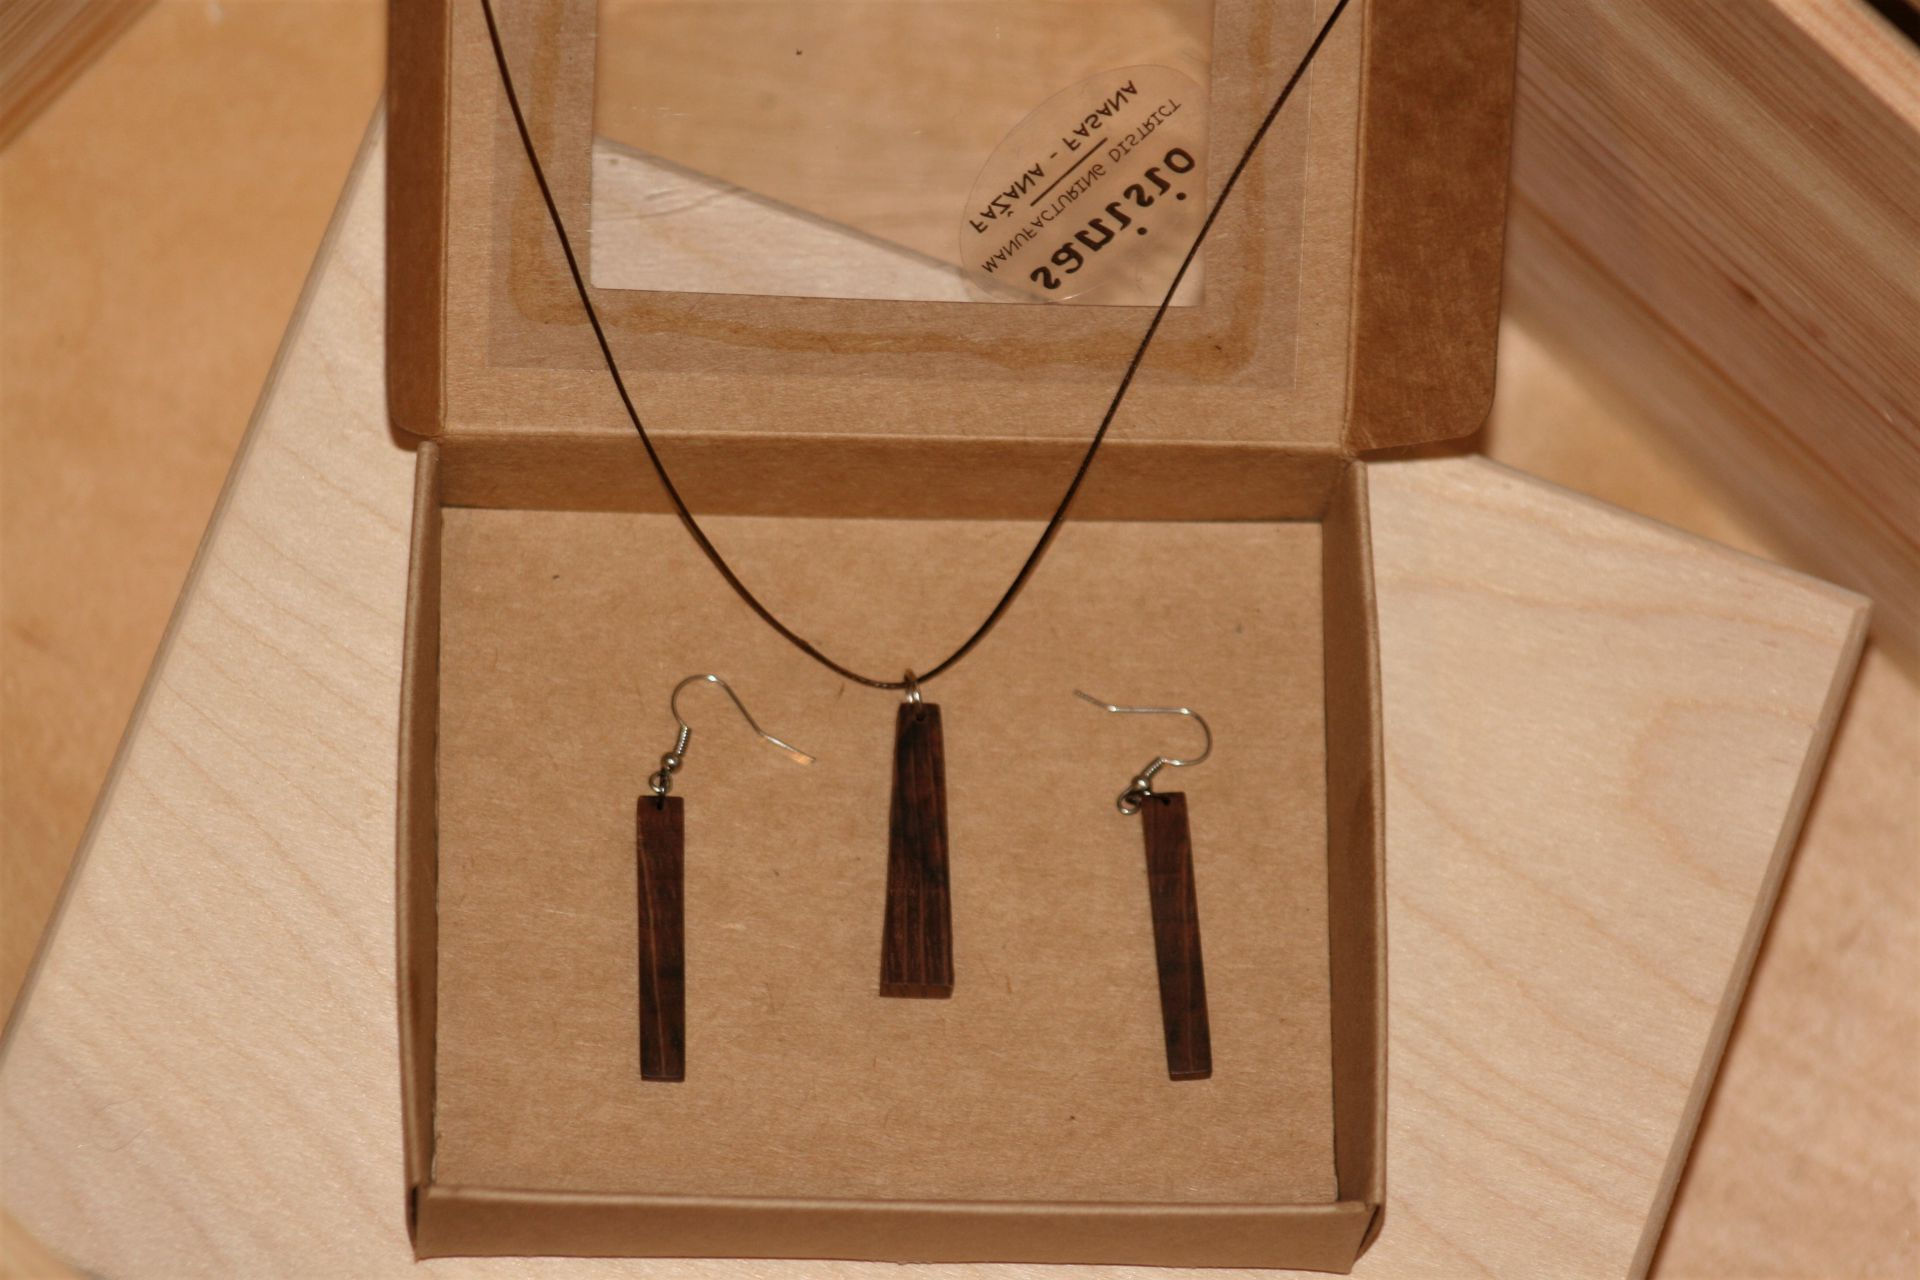 holm oak wood unique handmade jewellery set sanisio design wooden earrings necklace pendant